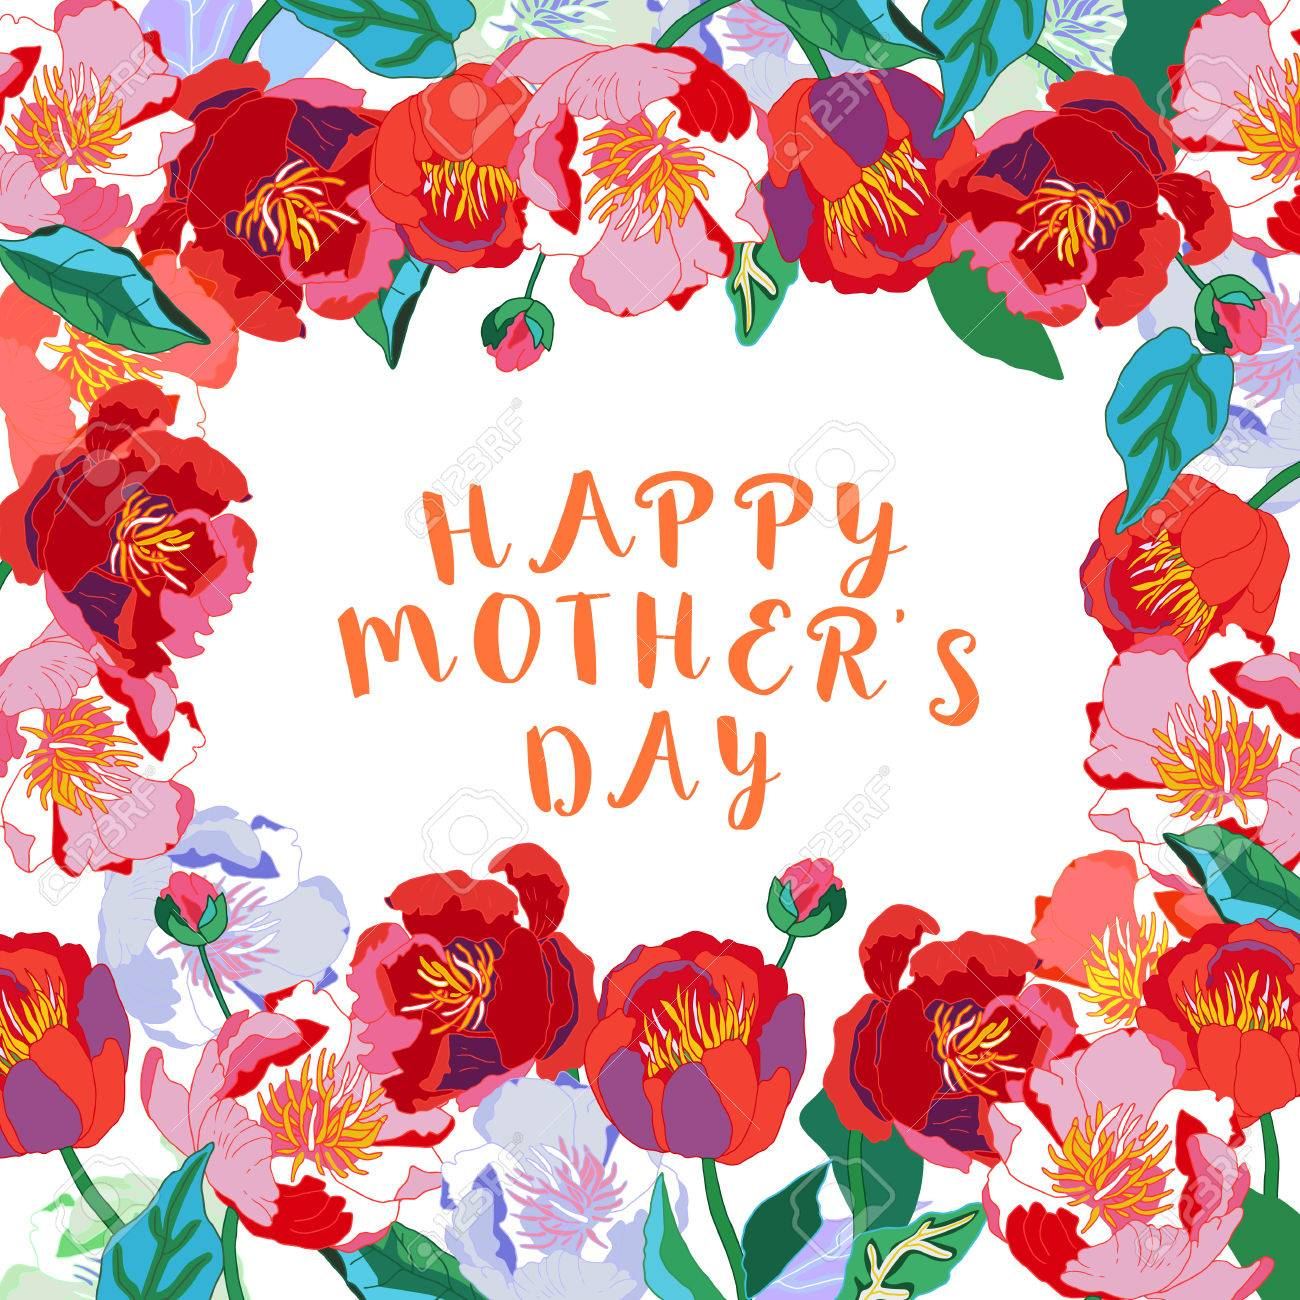 Happy mothers day lettering mothers day greeting card with happy mothers day lettering mothers day greeting card with blooming red flowers vector illustration kristyandbryce Image collections